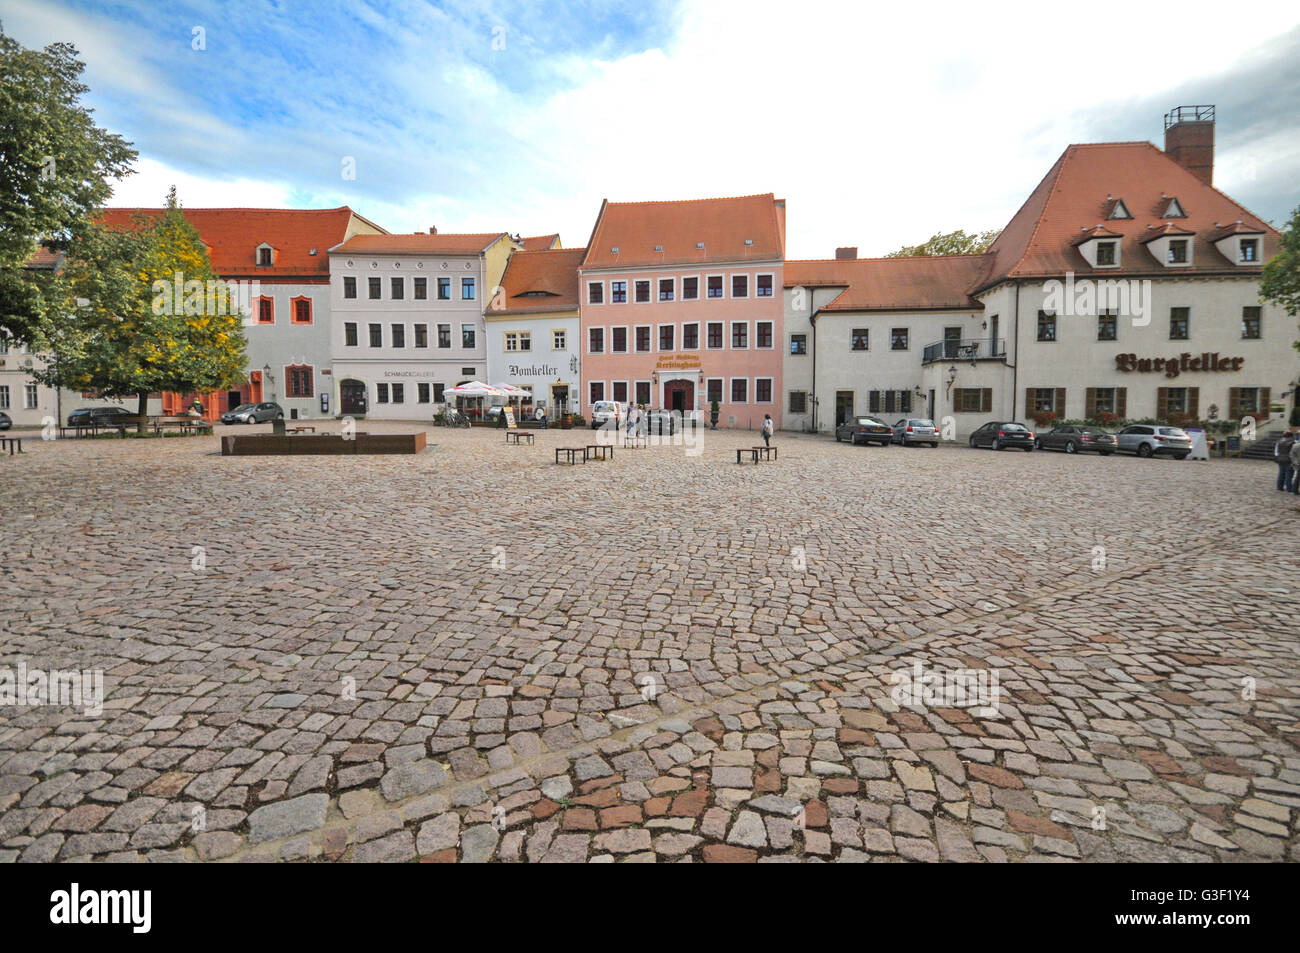 Germany, Saxony, Meißen, cathedral square, manor houses, gastronomy, hotel, well stone Stock Photo